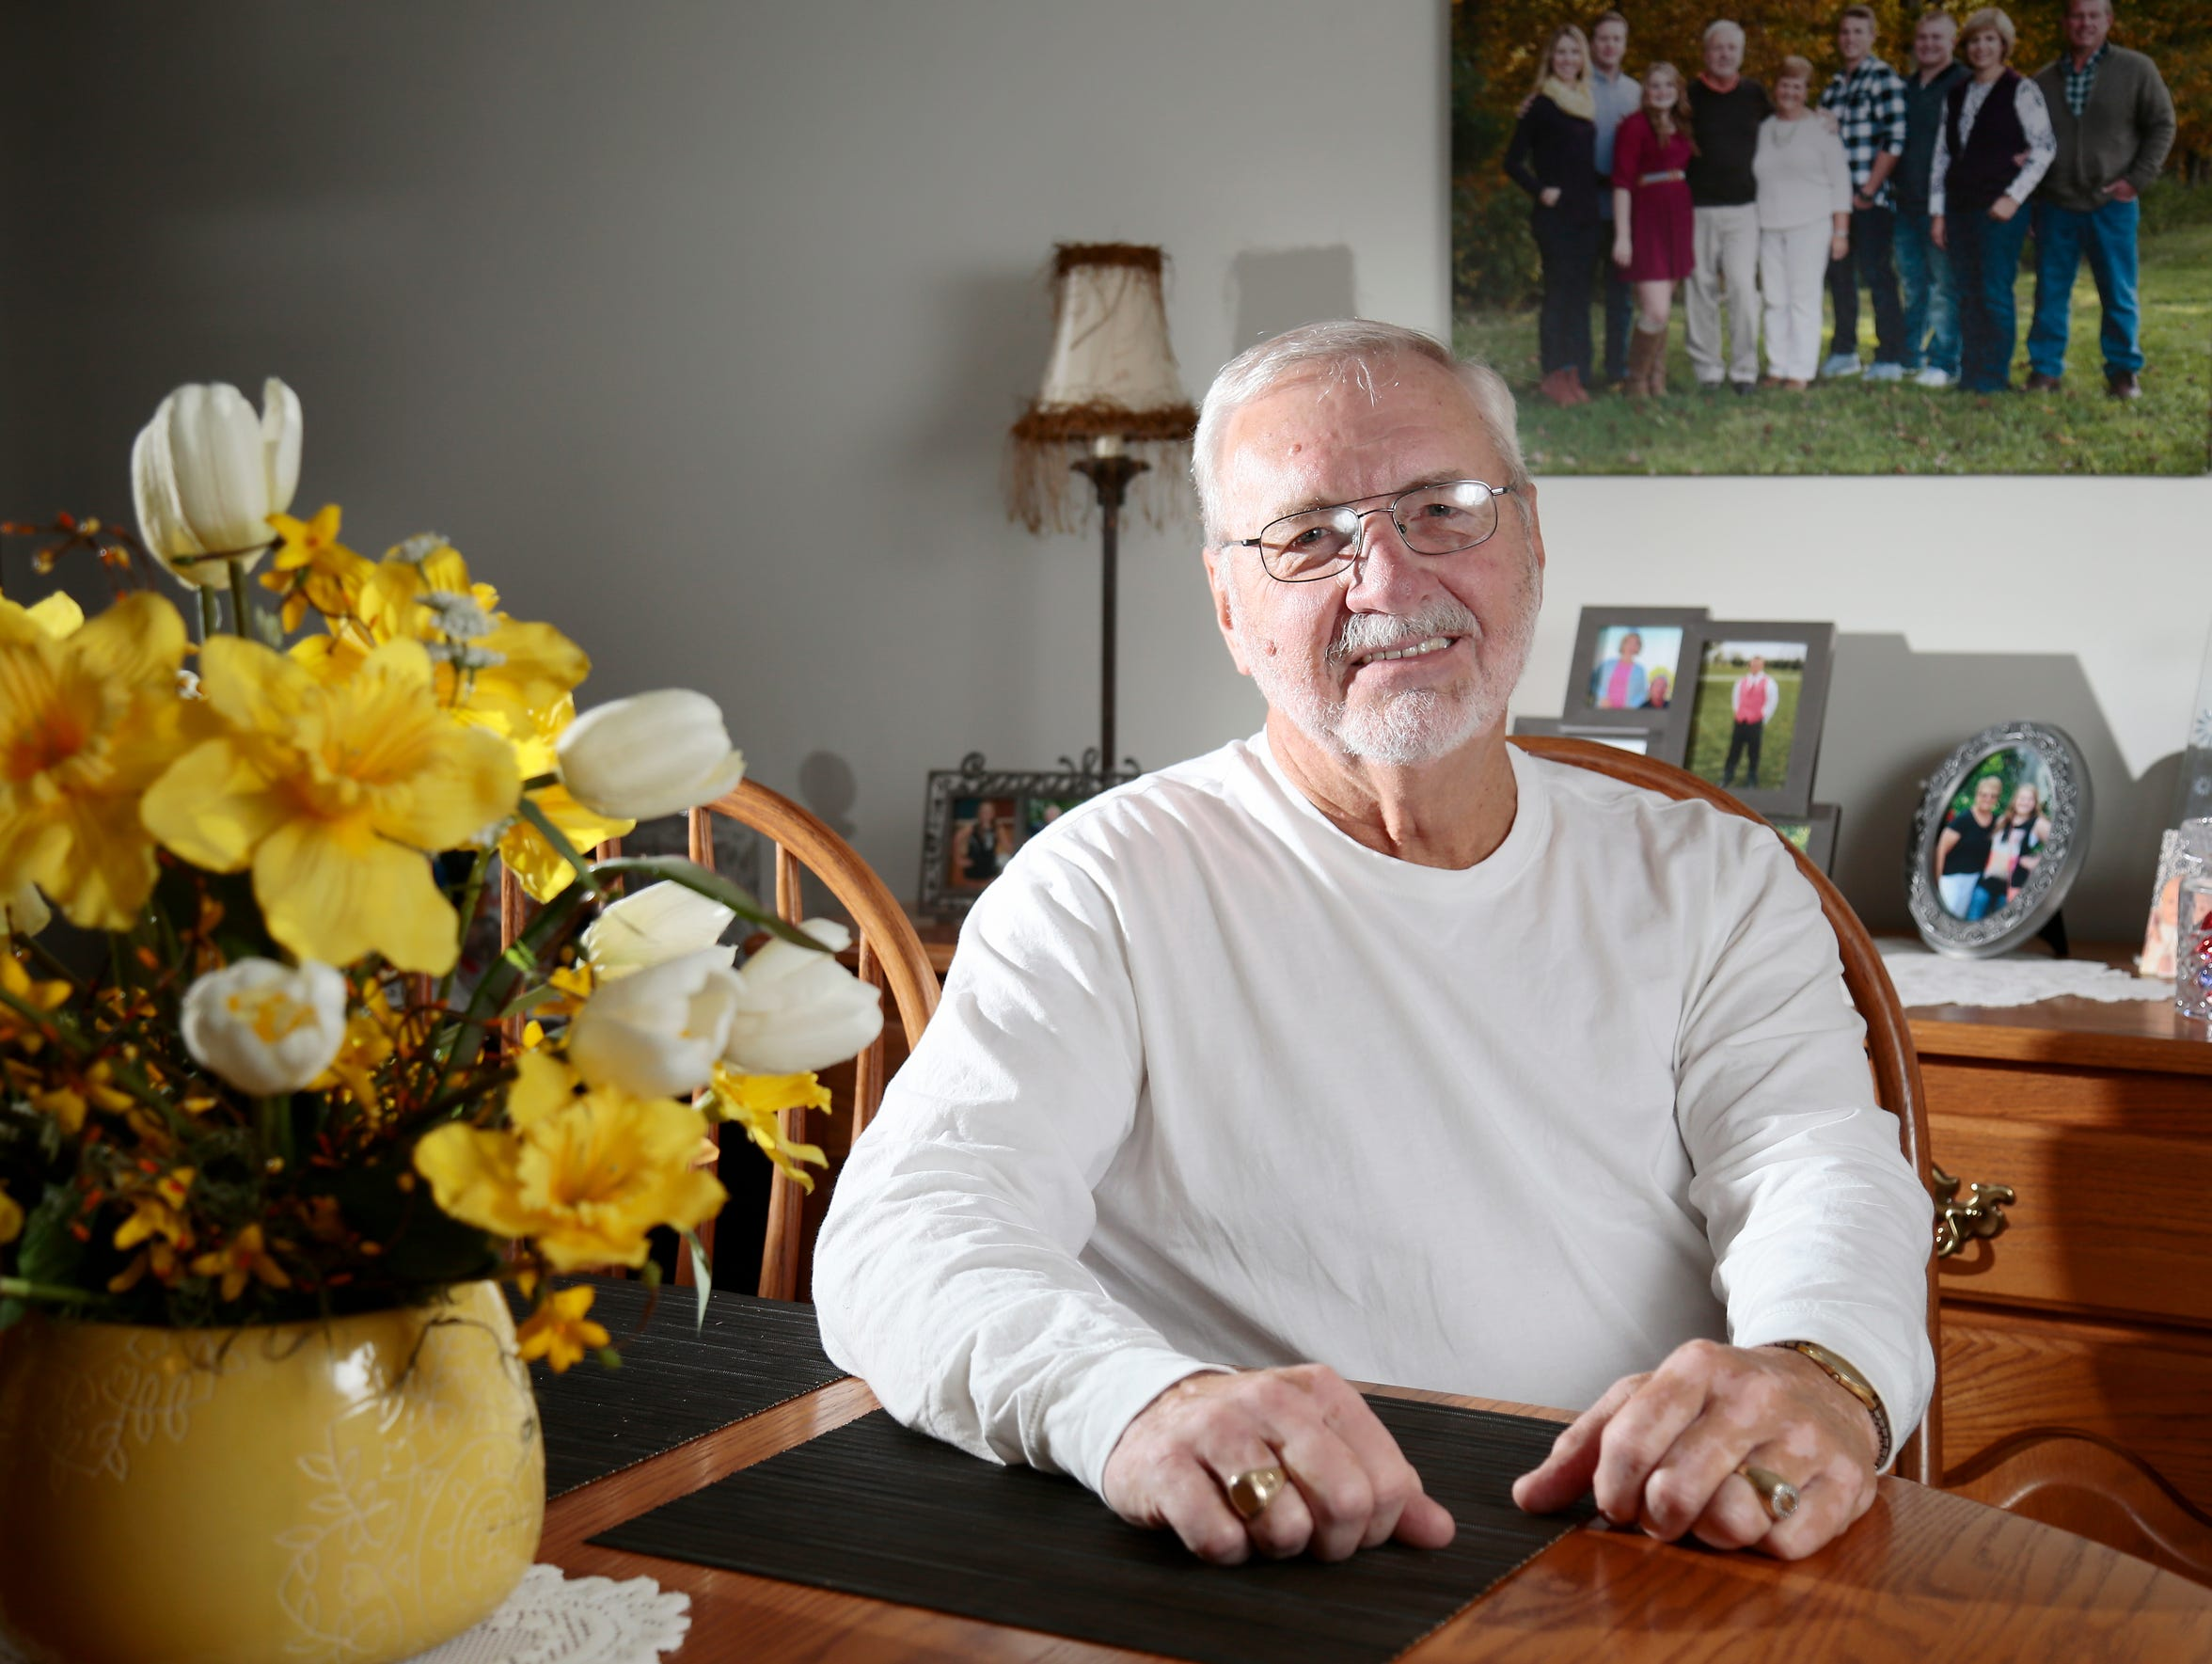 Ed Beckman, 70, of Ross Township, spent 32 years with